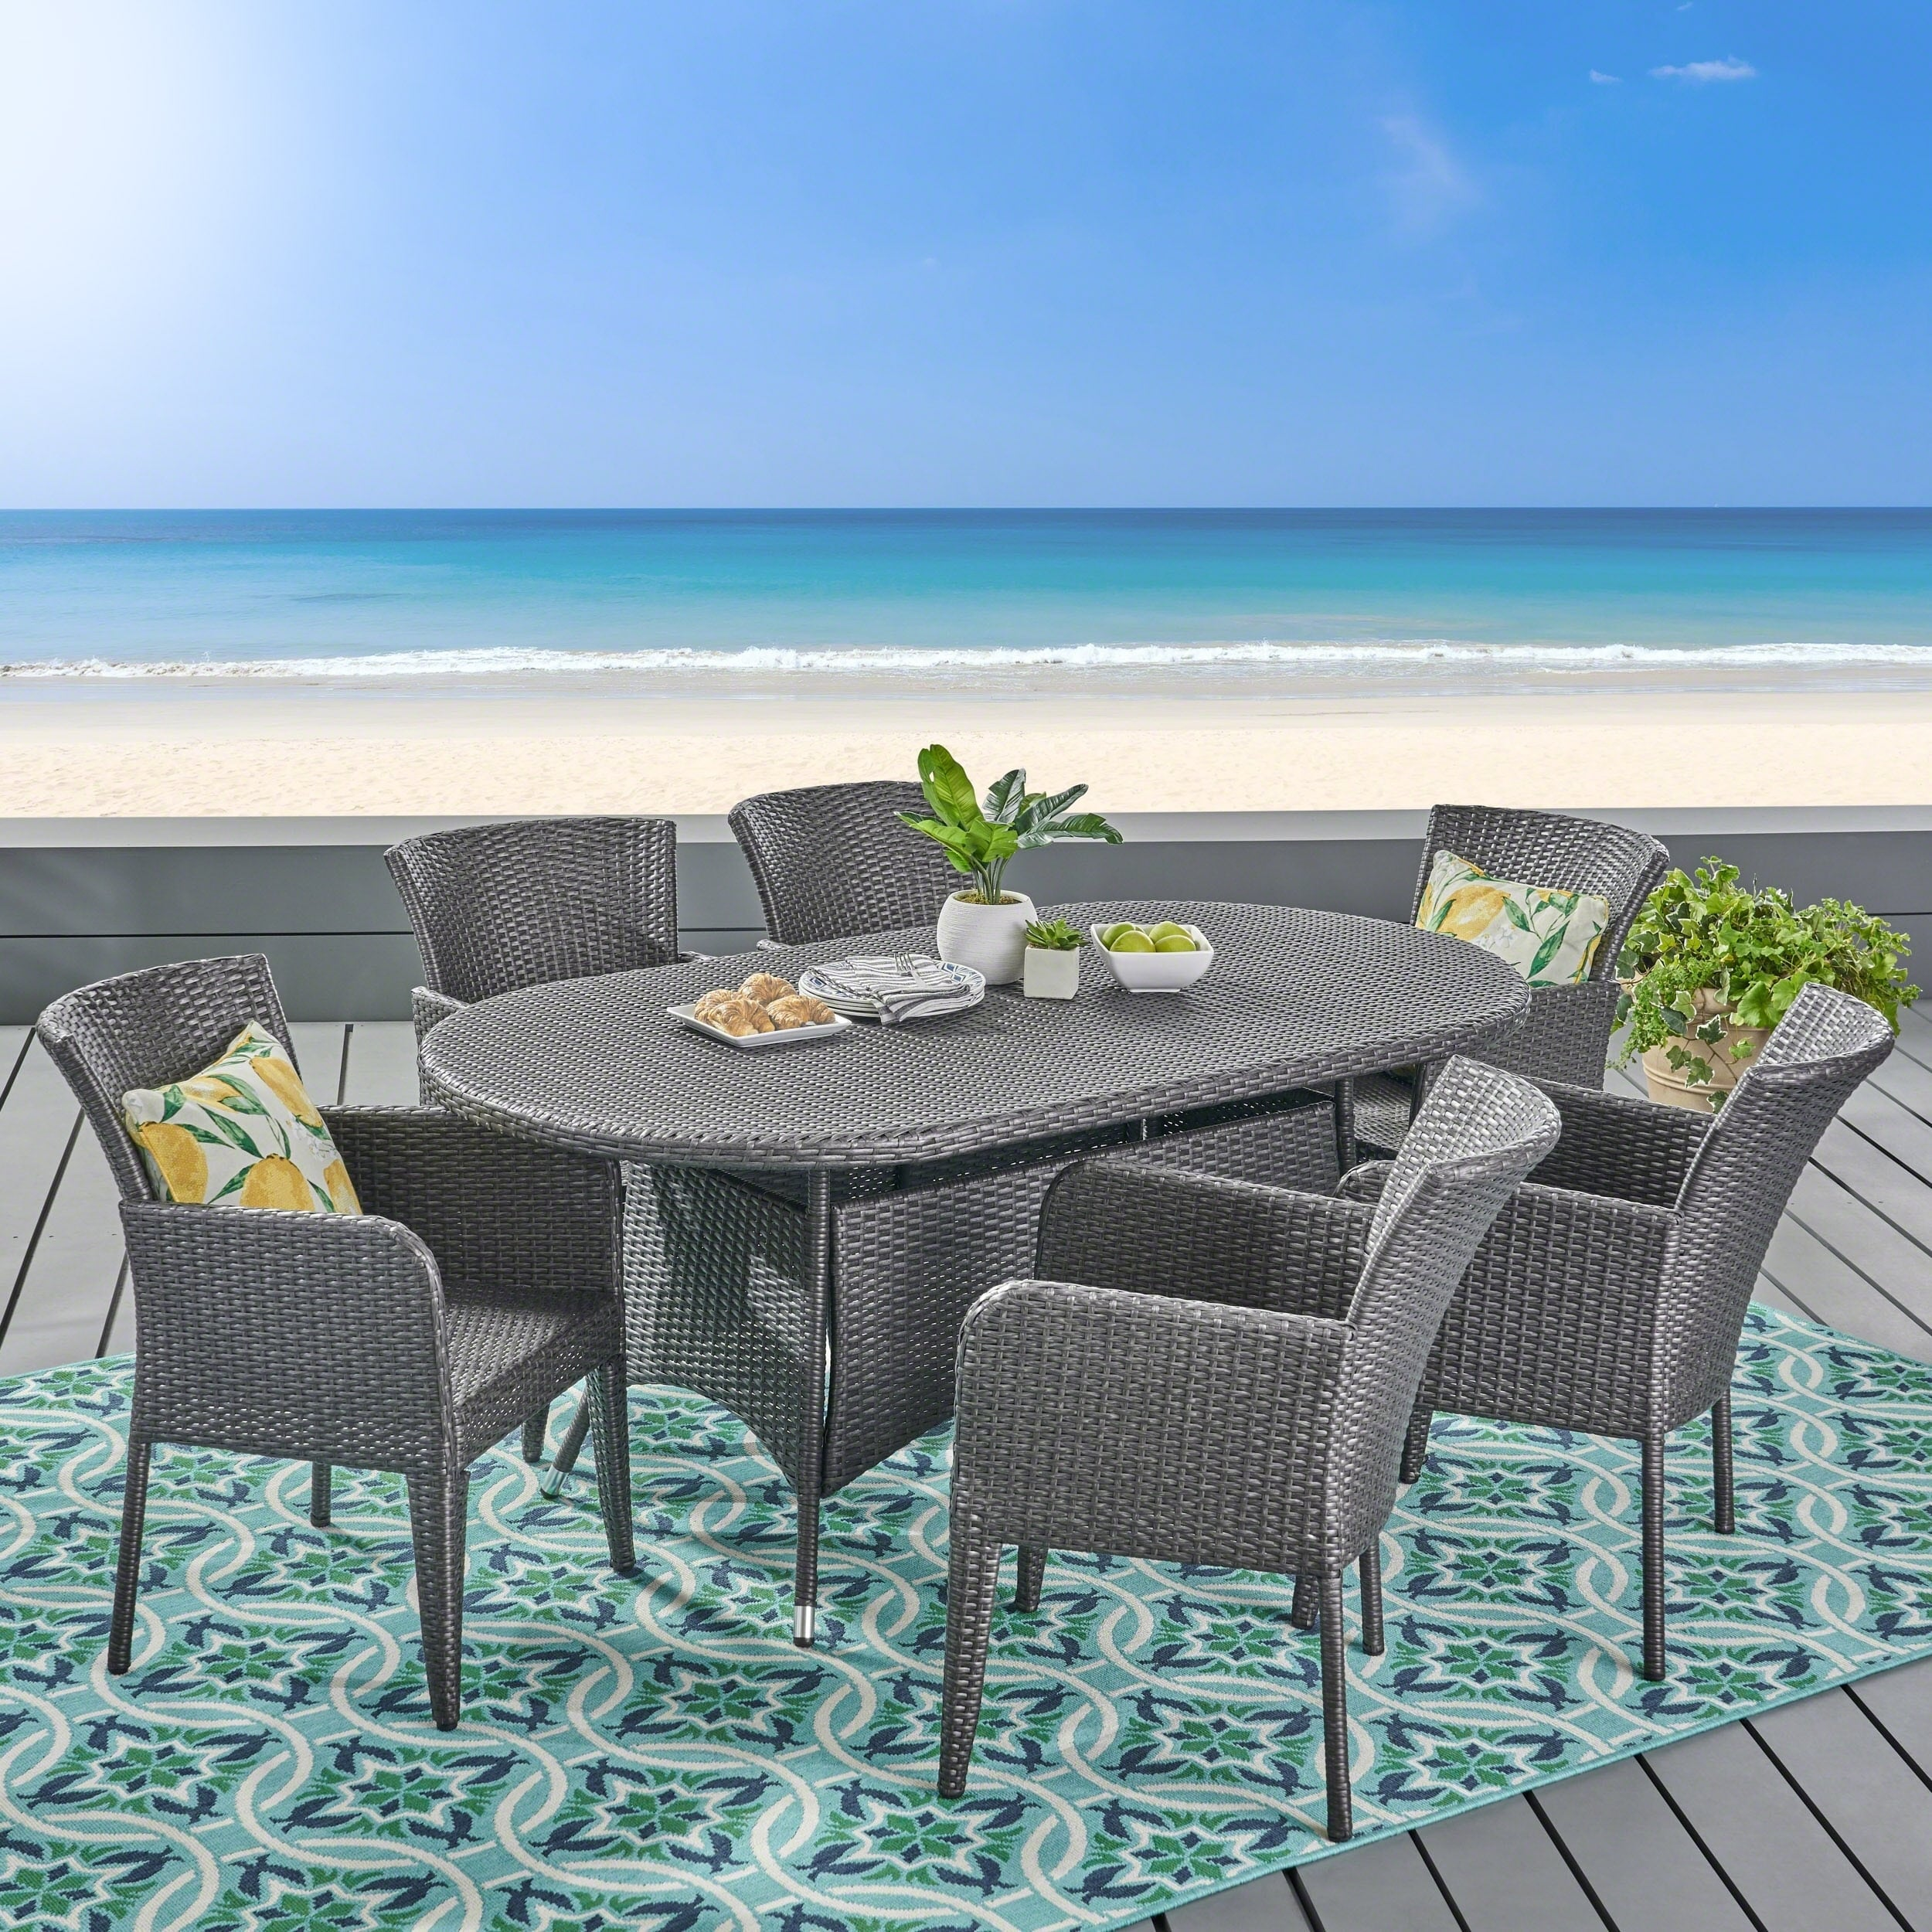 Christopher Knight Home Corsica Outdoor 7-piece Wicker Dining Set by